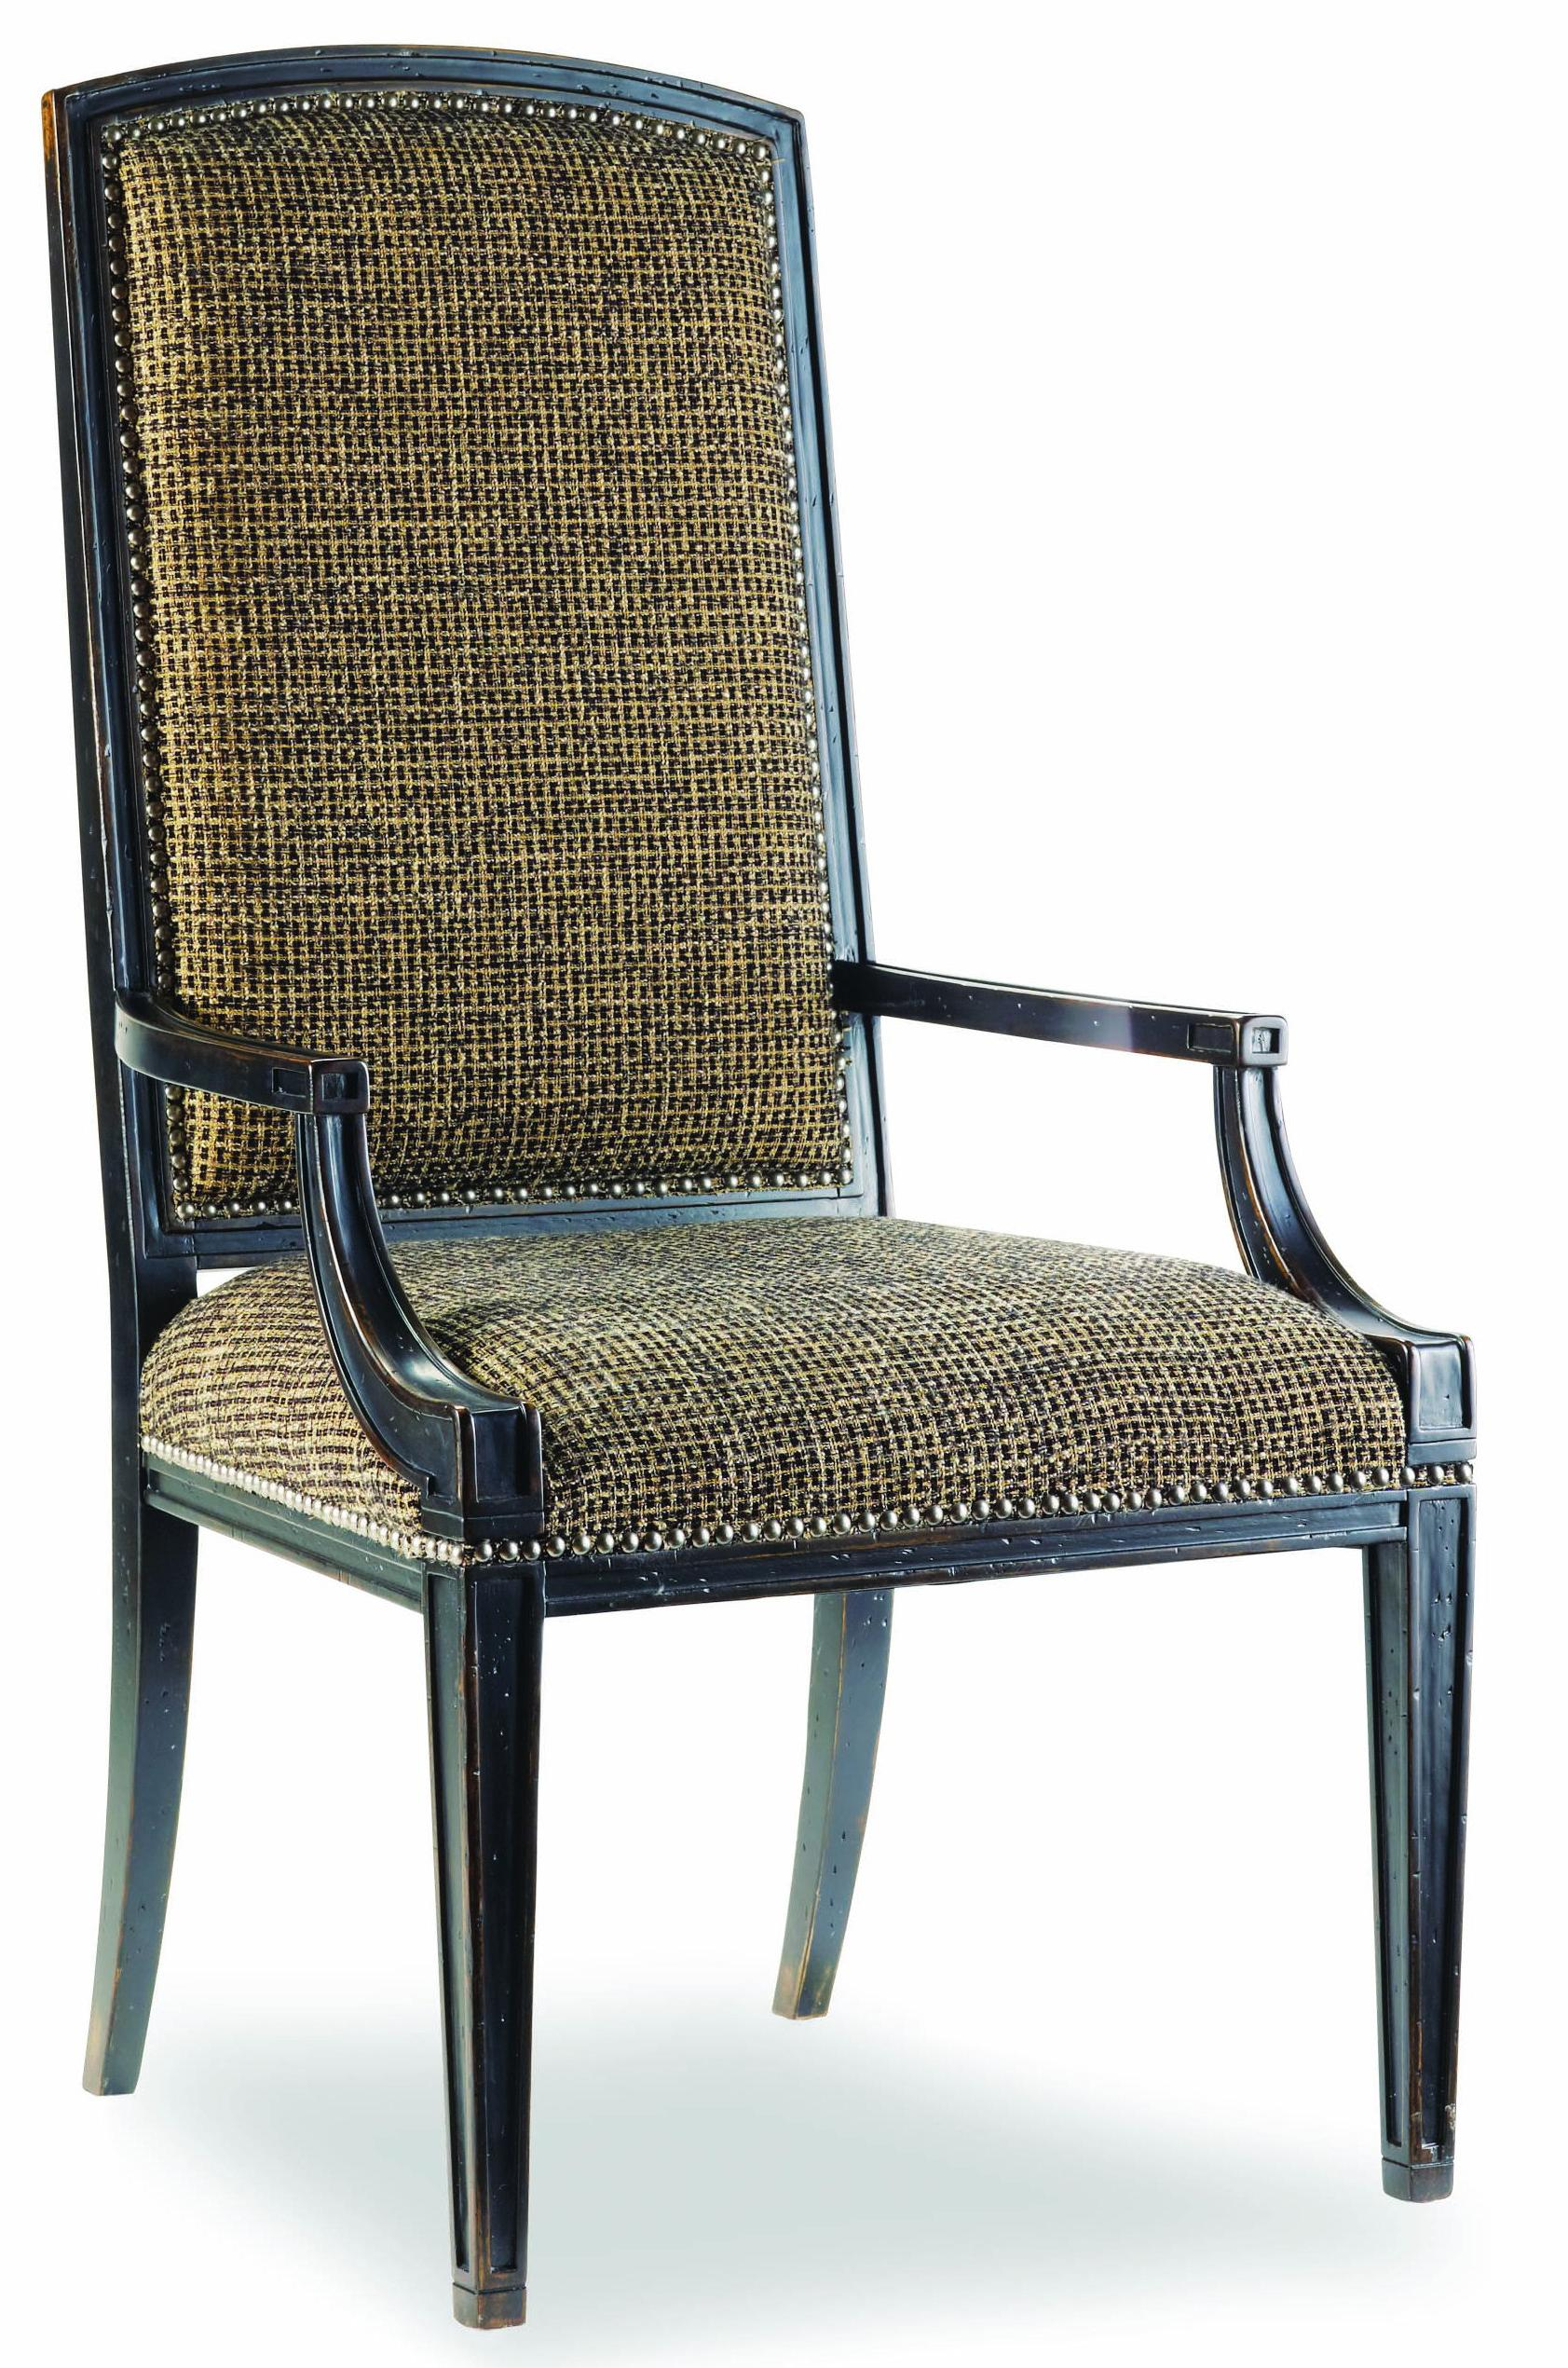 Hooker Furniture Sanctuary Mirage Arm Chair - Item Number: 3005-75400